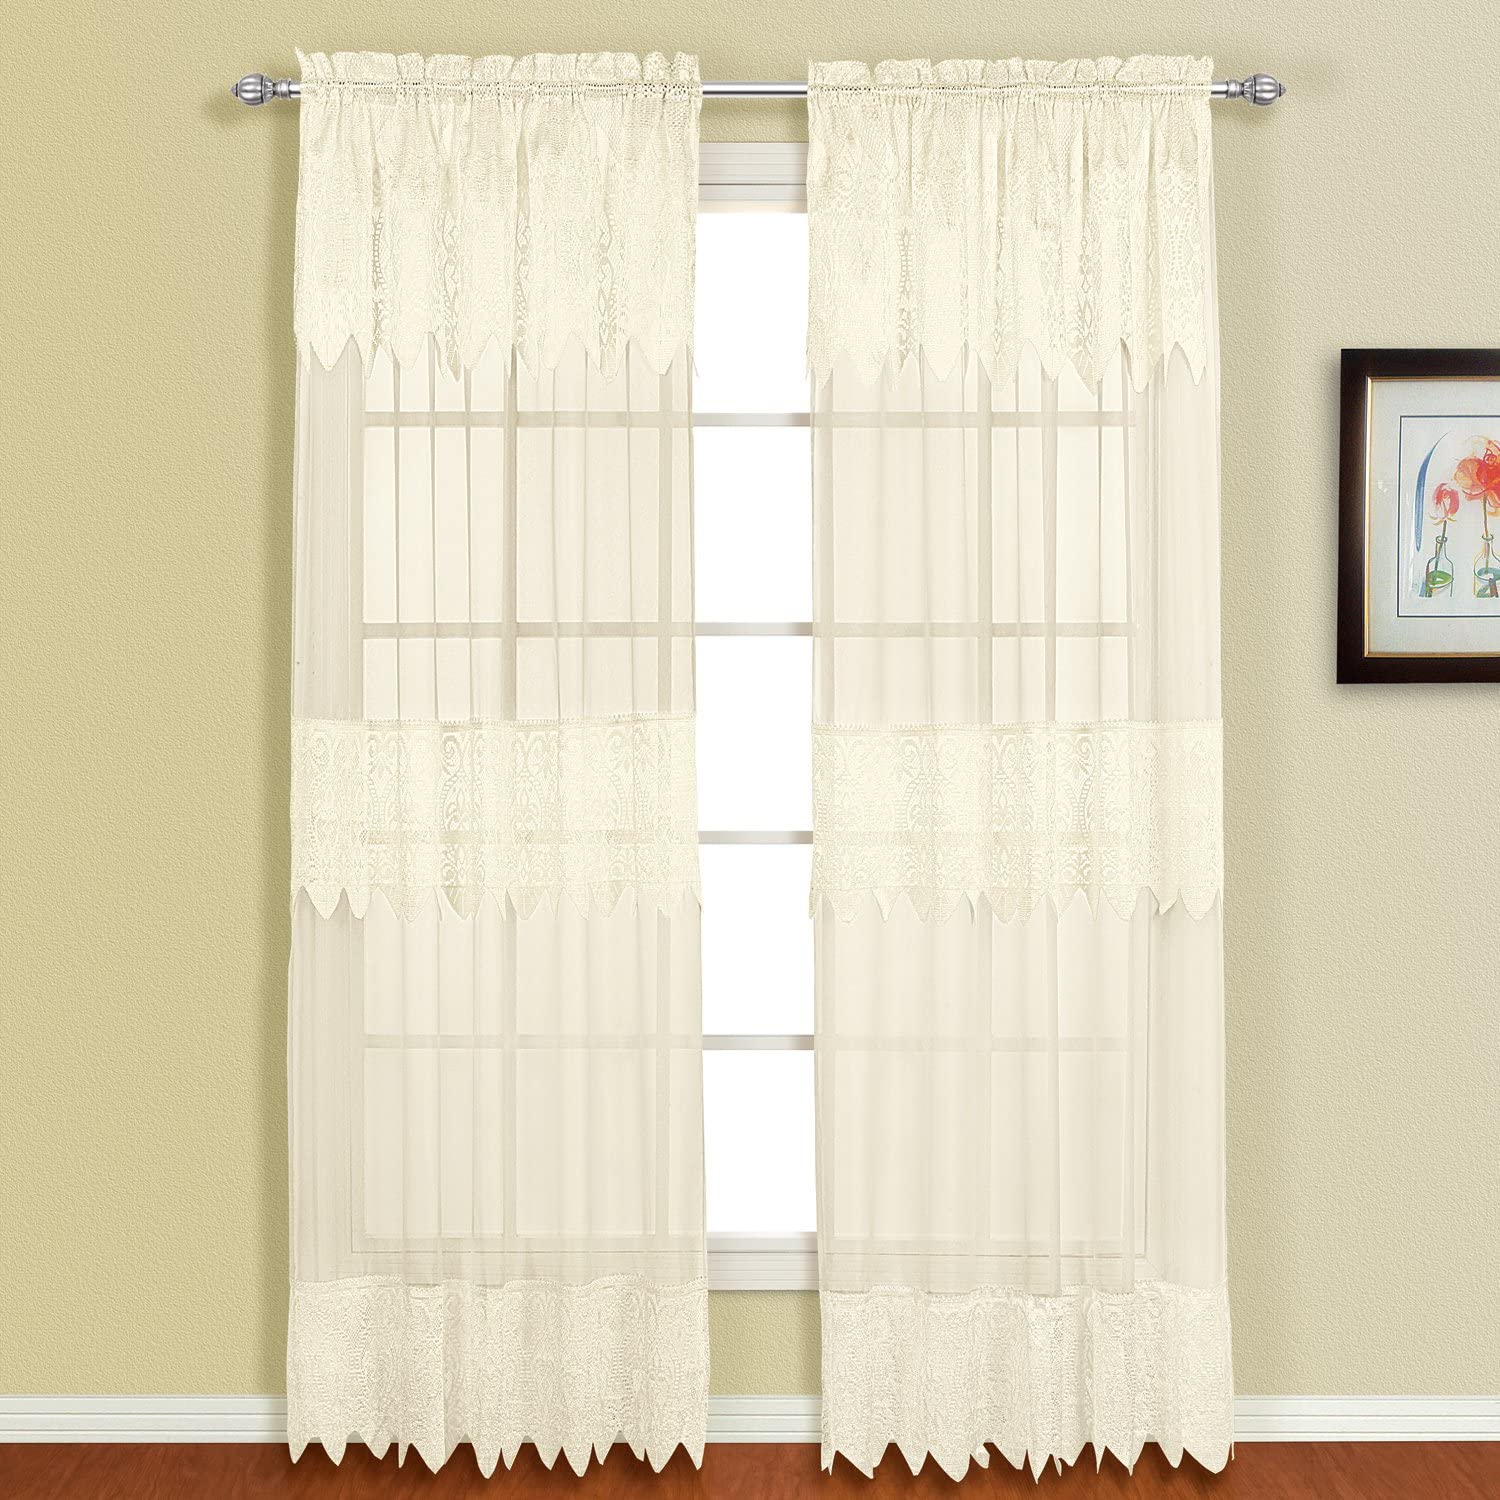 American Curtain and Home Patricia Window Curtain, 52-Inch by 84-Inch, Natural